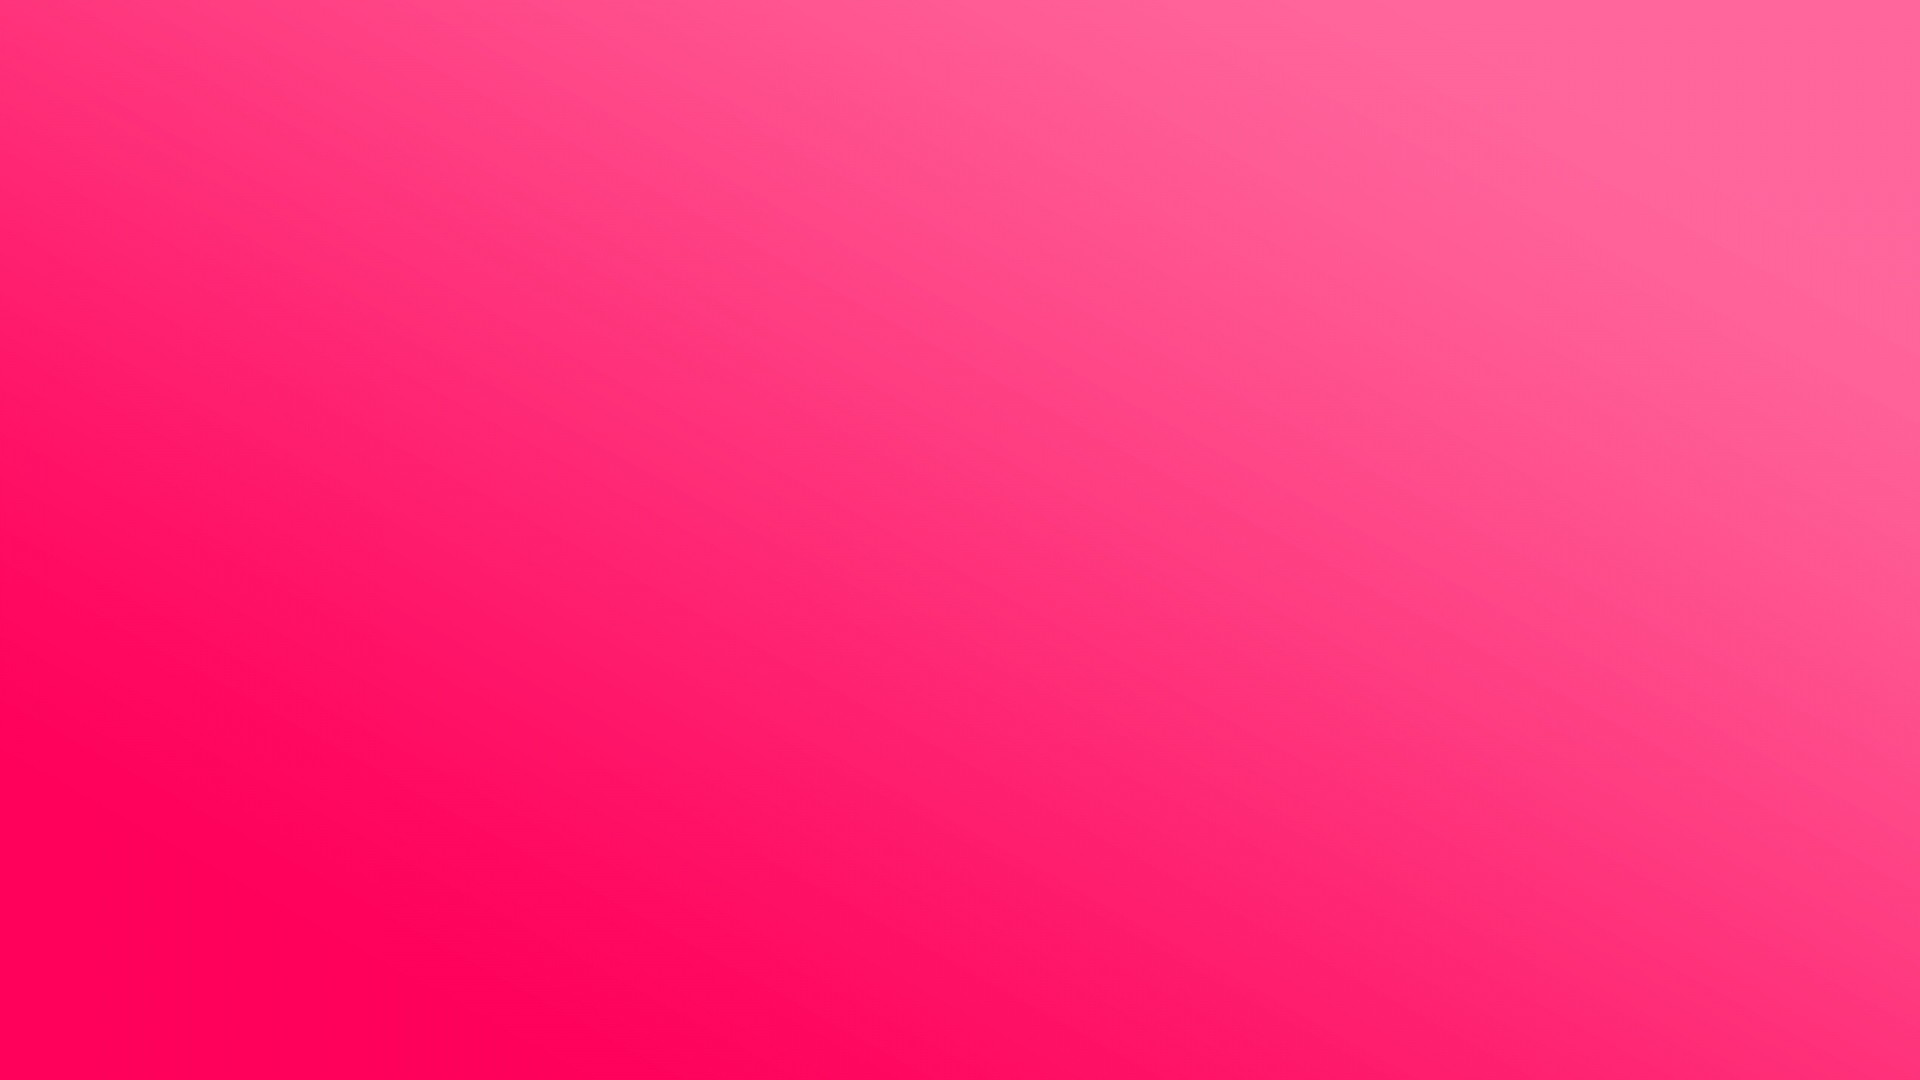 1920x1080  Wallpaper pink, solid, color, light, bright